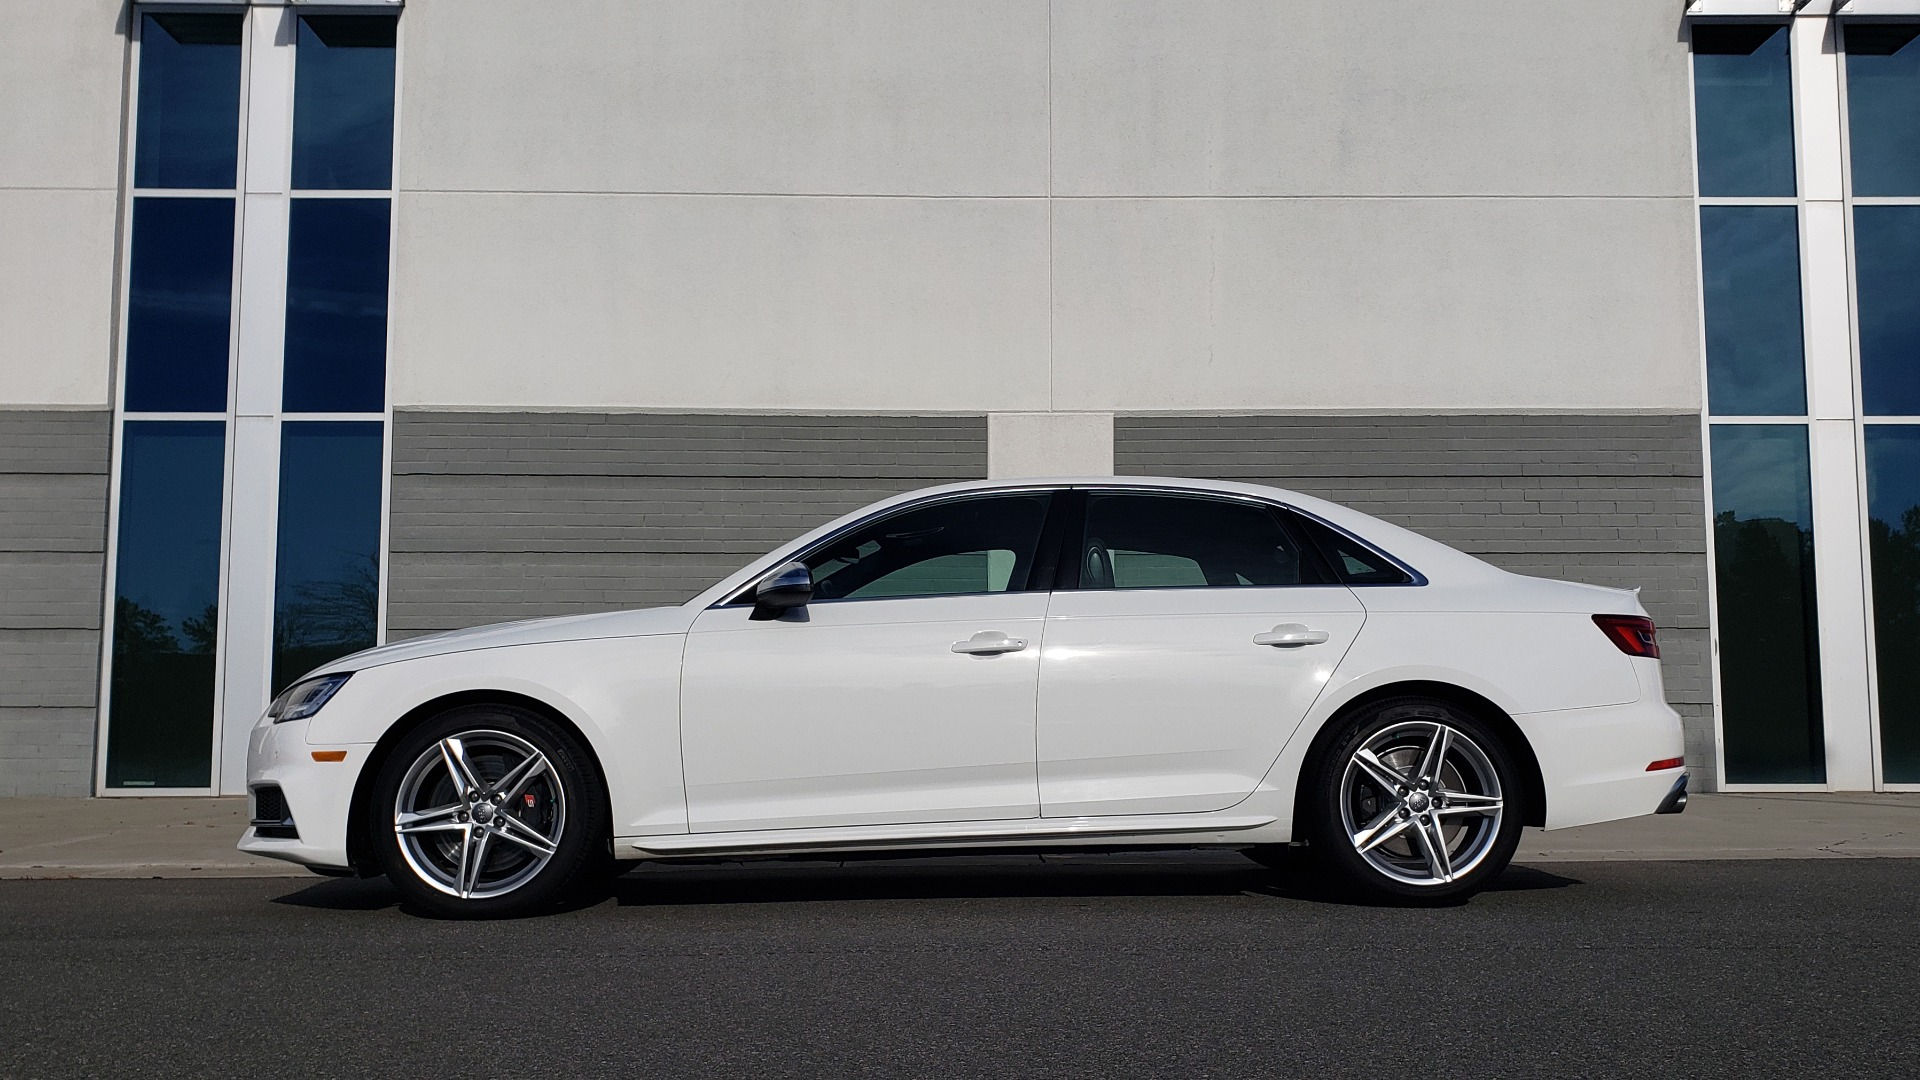 Used 2018 Audi S4 PREMIUM PLUS / TECH PKG / NAV / CLD WTHR / REARVIEW for sale Sold at Formula Imports in Charlotte NC 28227 4